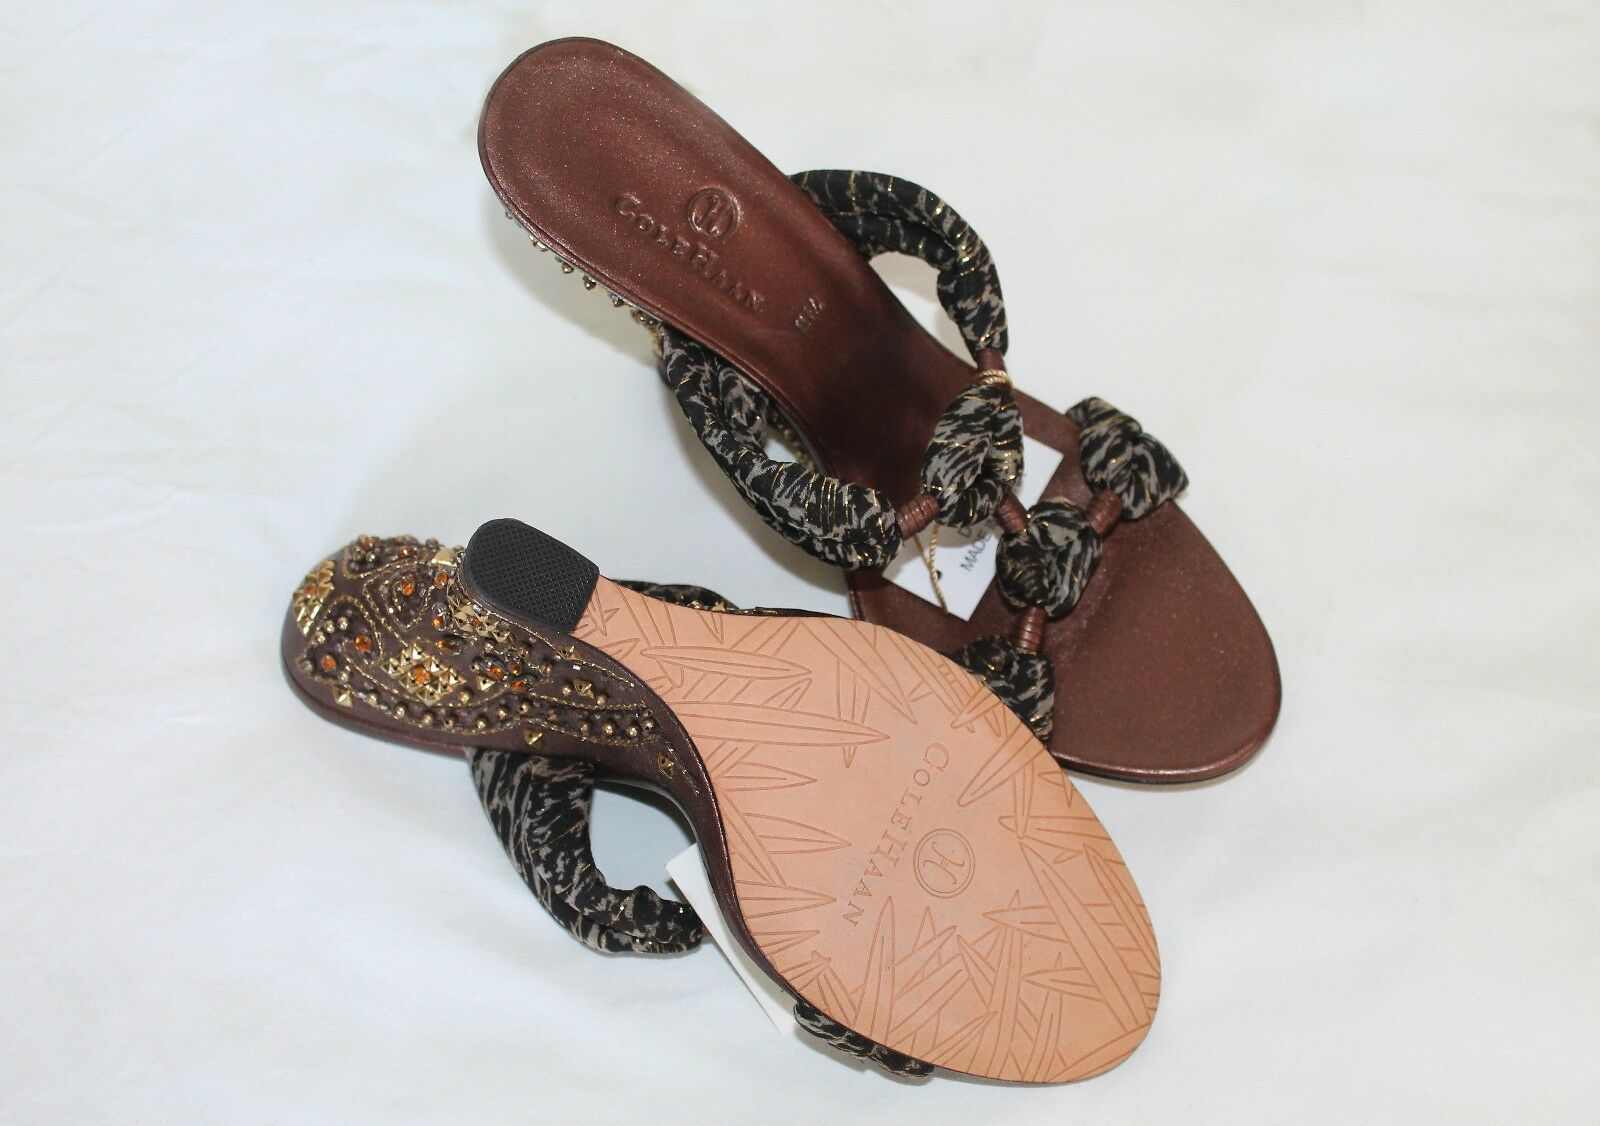 New Without Box Box Box  Cole Haan Embellished Wedge Sandals - Sz 7.5B - b57862